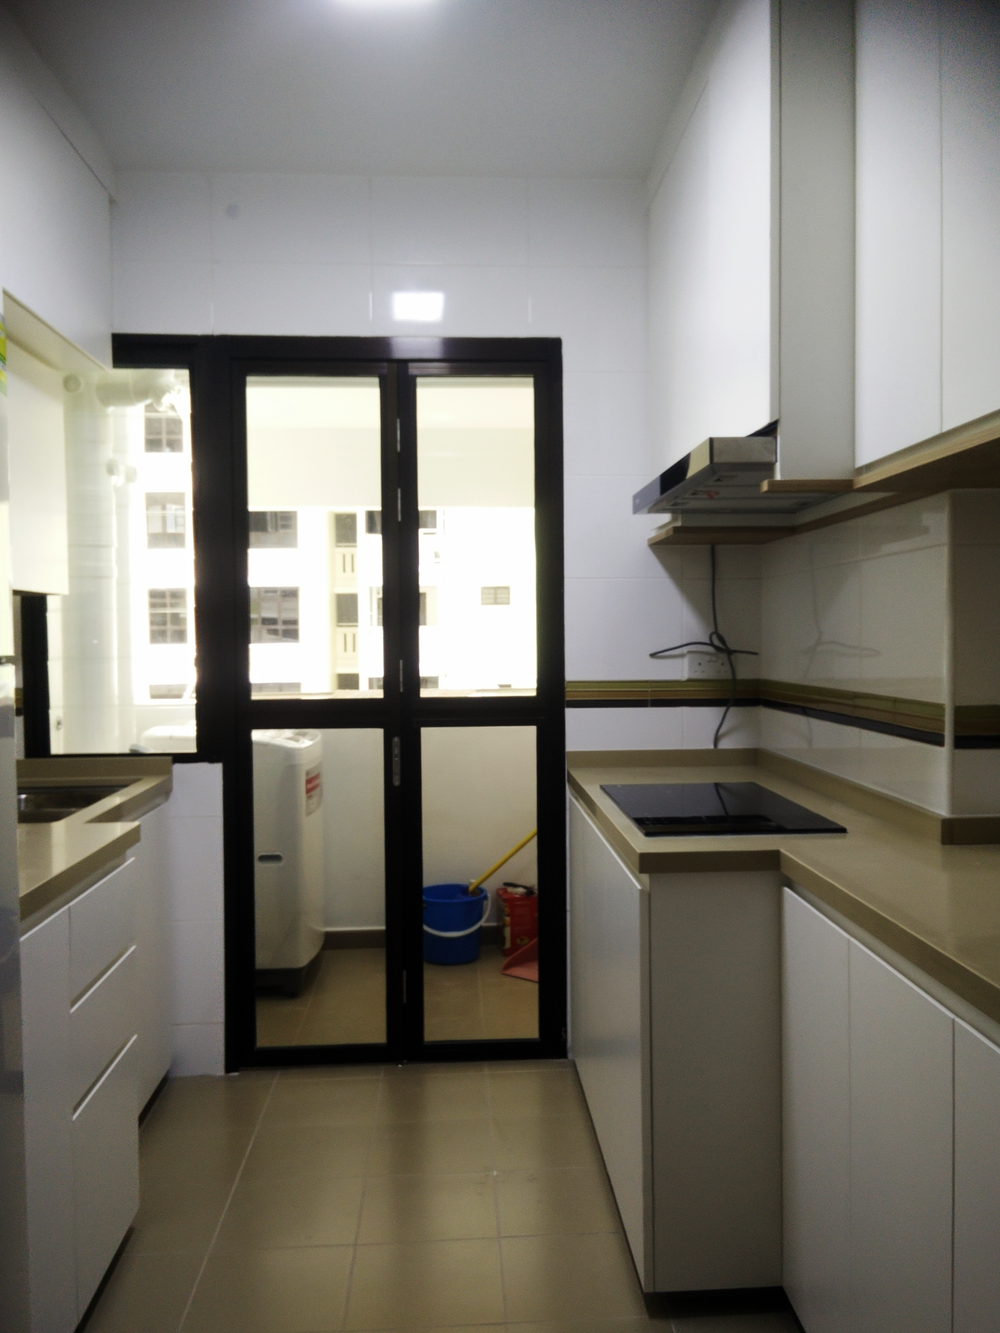 Bto Kitchen Design Basic Elements For Hdb Bto 3 Rm Flat Jadier Hdb Interior Design Singapore